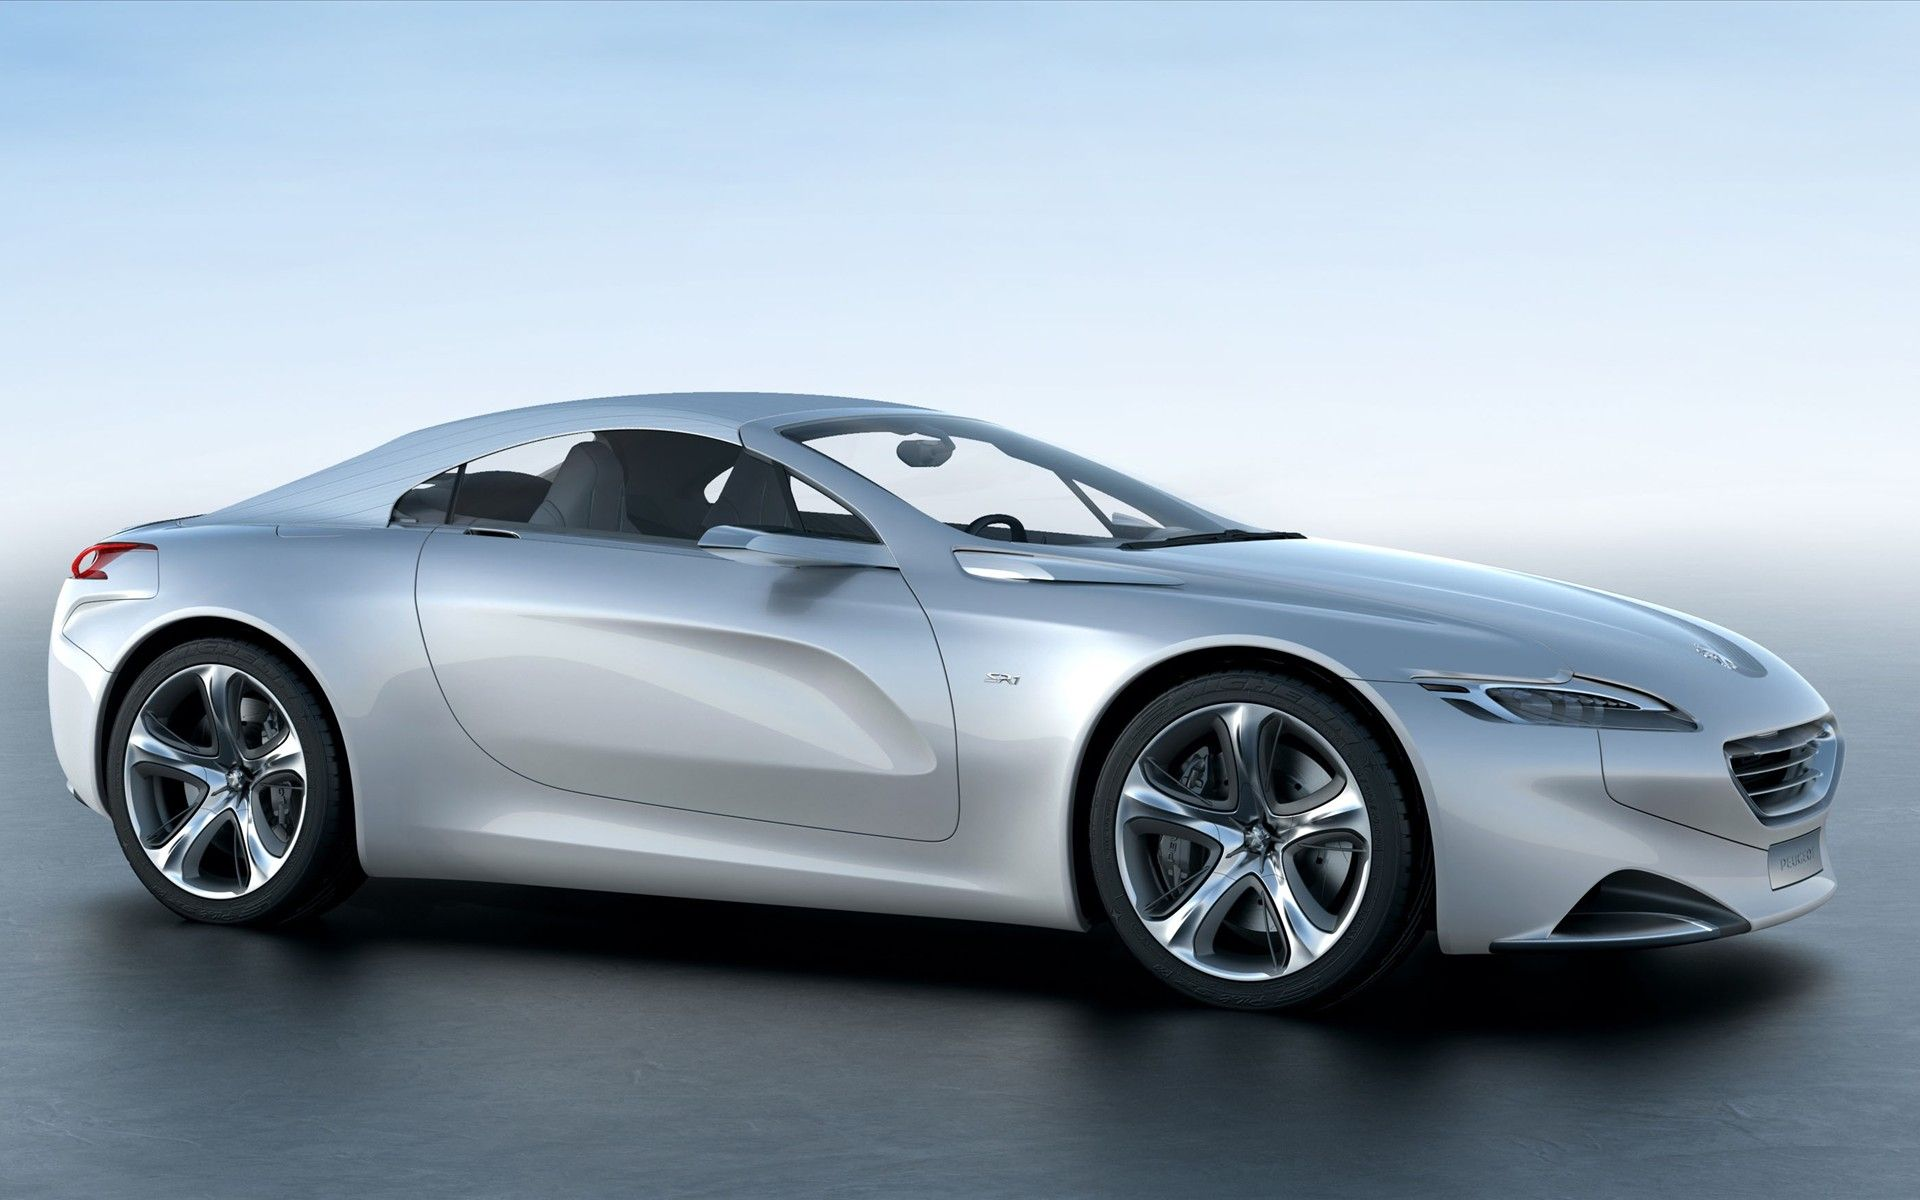 2010 peugeot concept car front and side top up 2 wallpaper